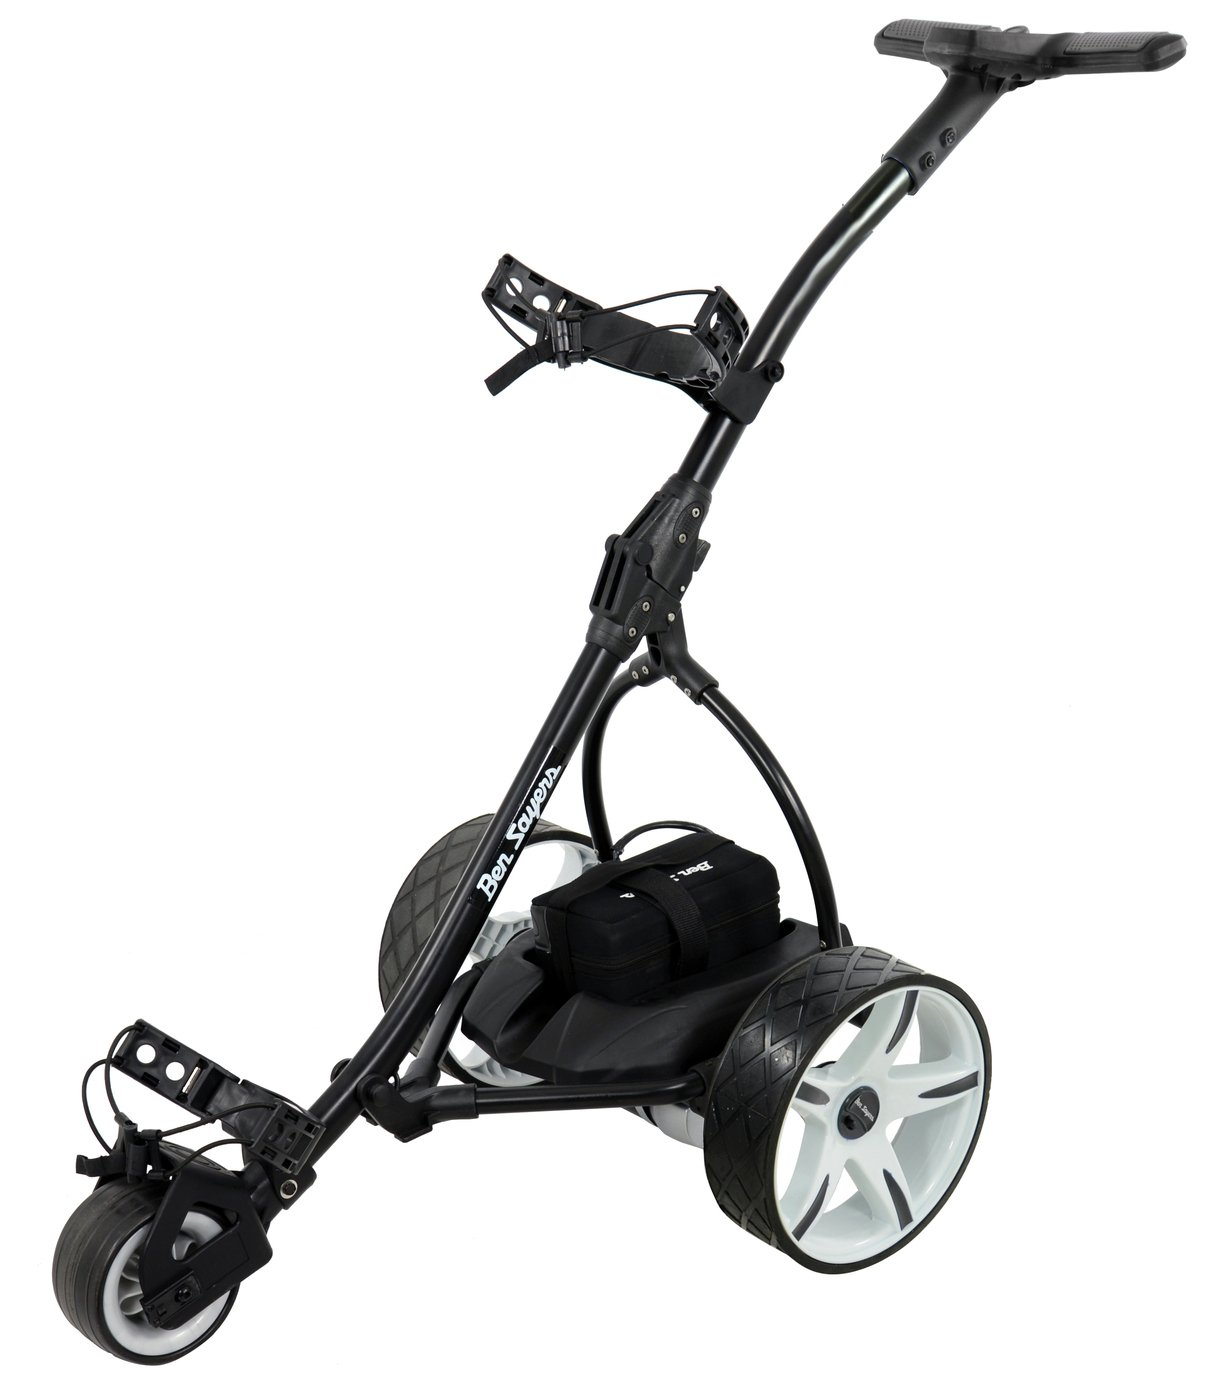 Ben Sayers Lithium Battery Electric Trolley